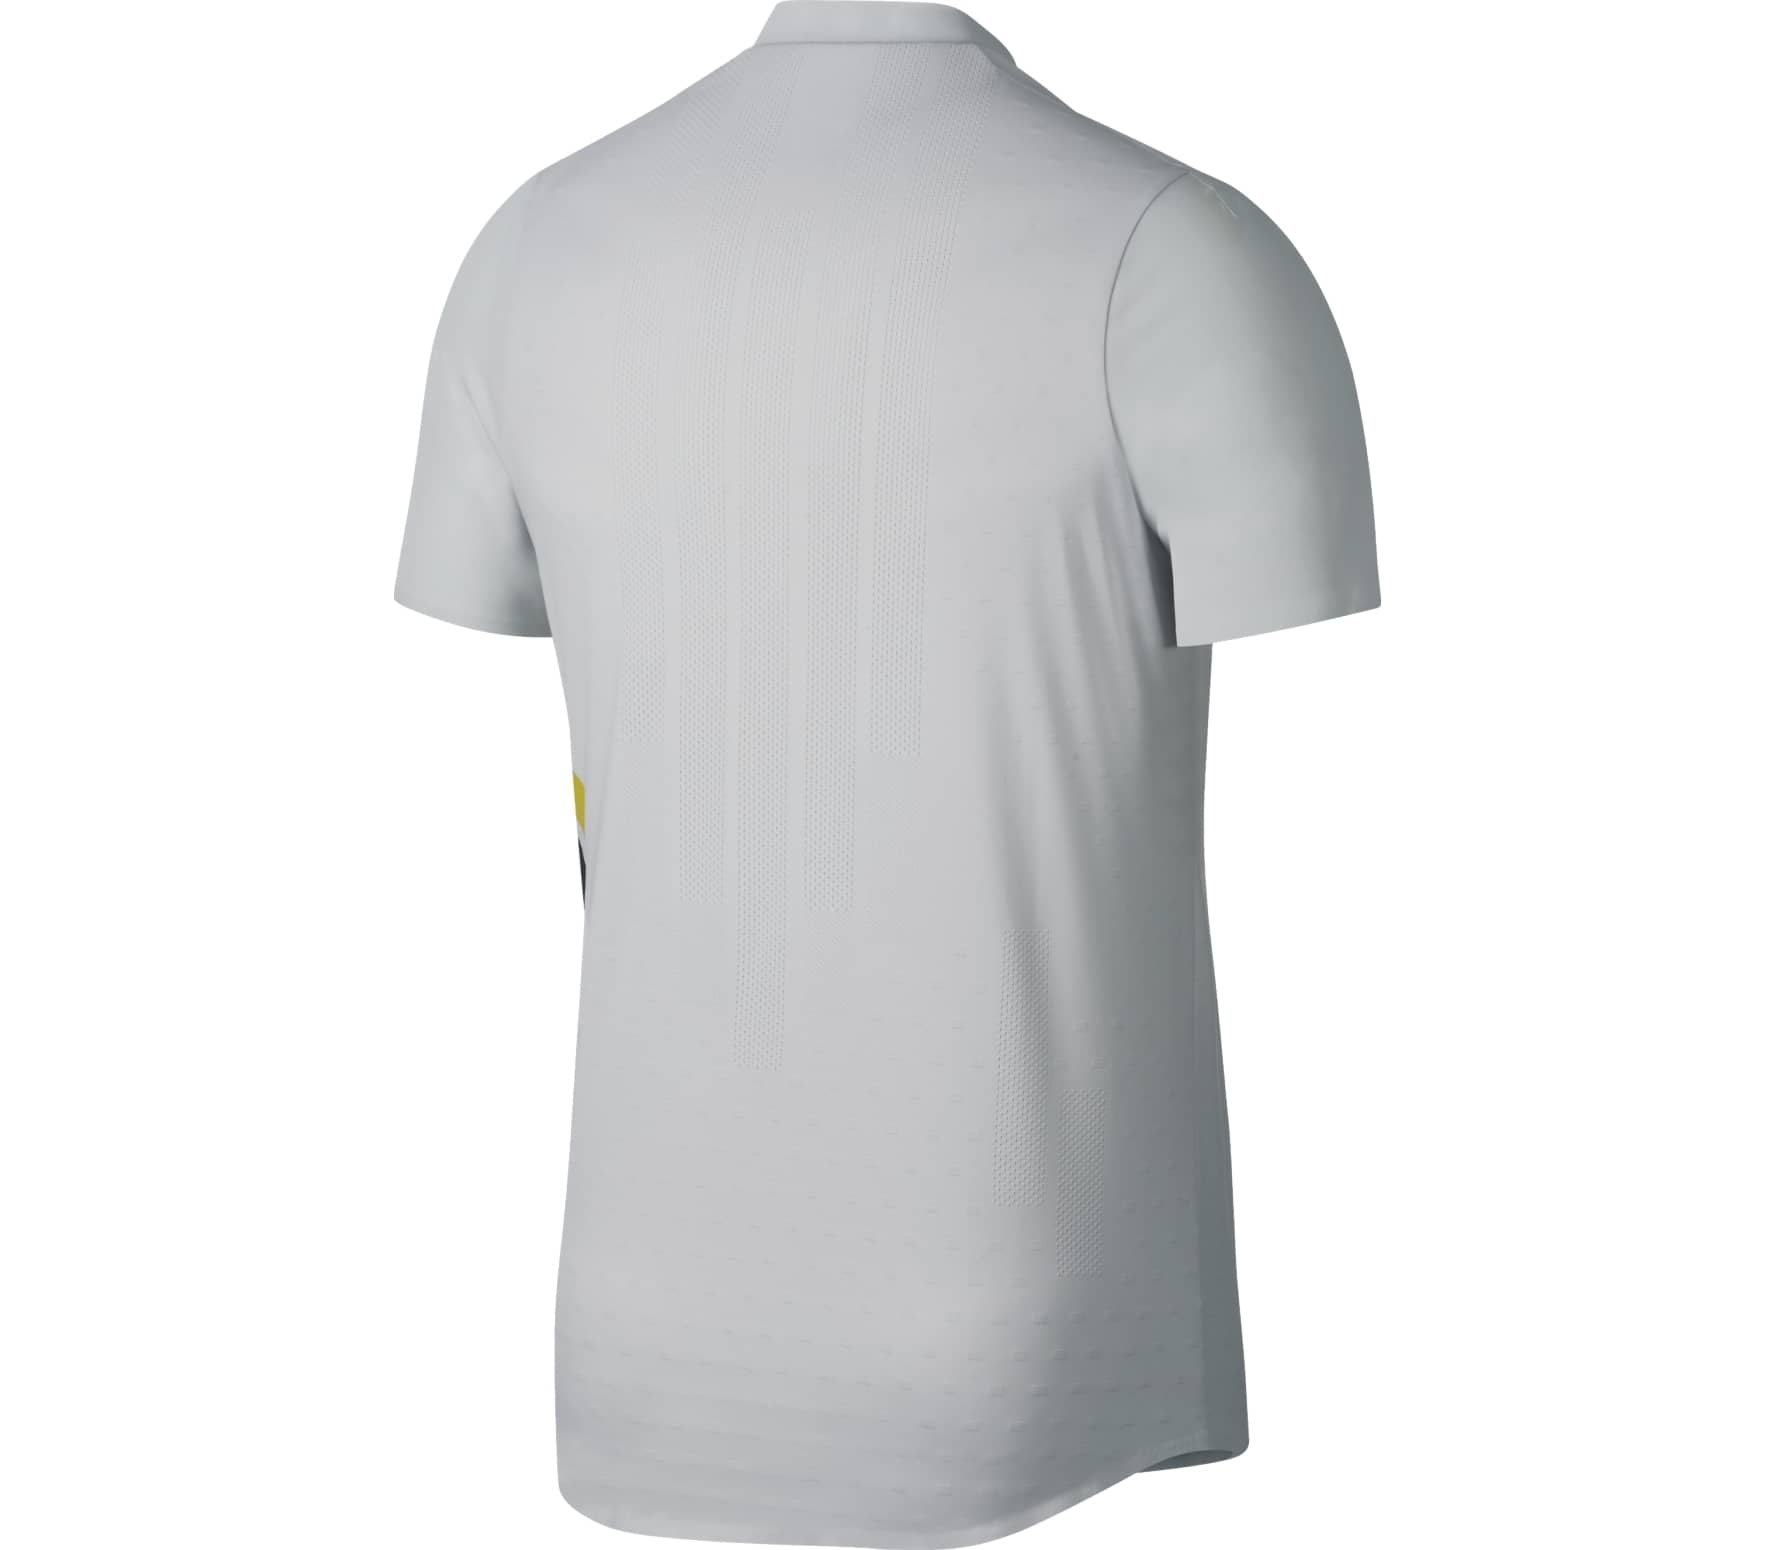 Nike - Advantage Court Zonal Cooling RF men s tennis polo top (light grey) 96847f7bd4e3